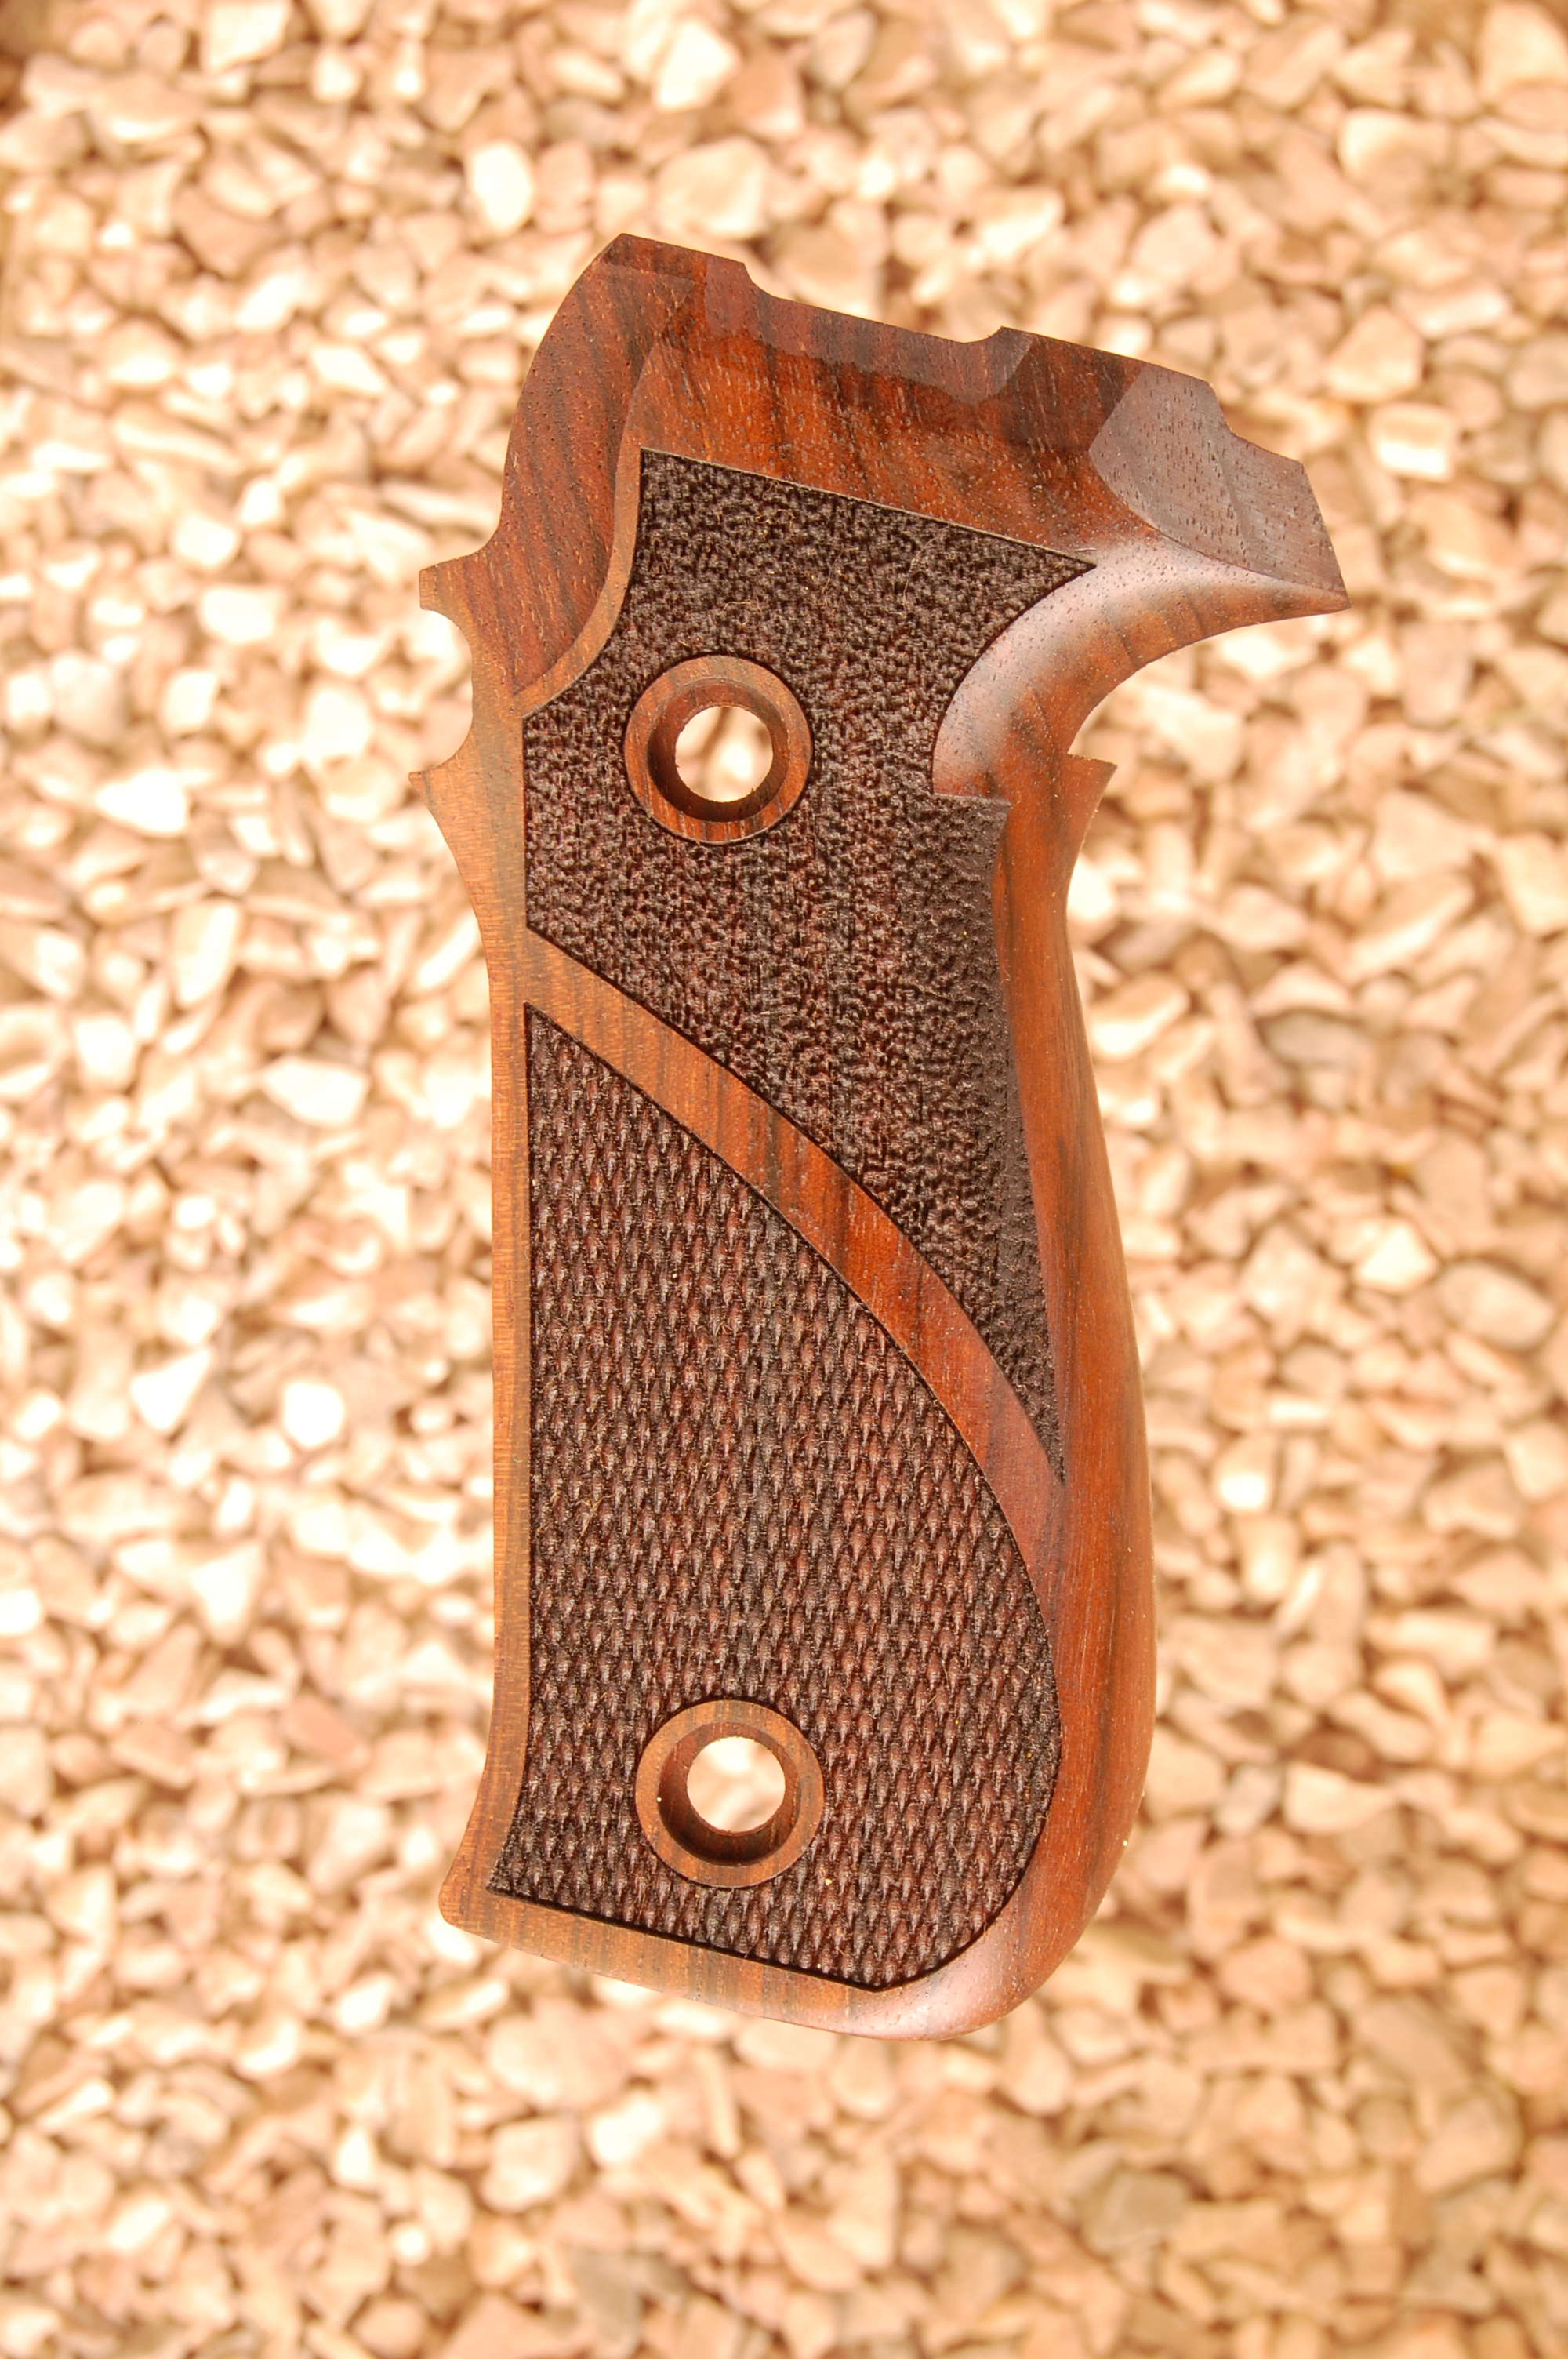 SIG P226 grips (checkered+textured) - full size